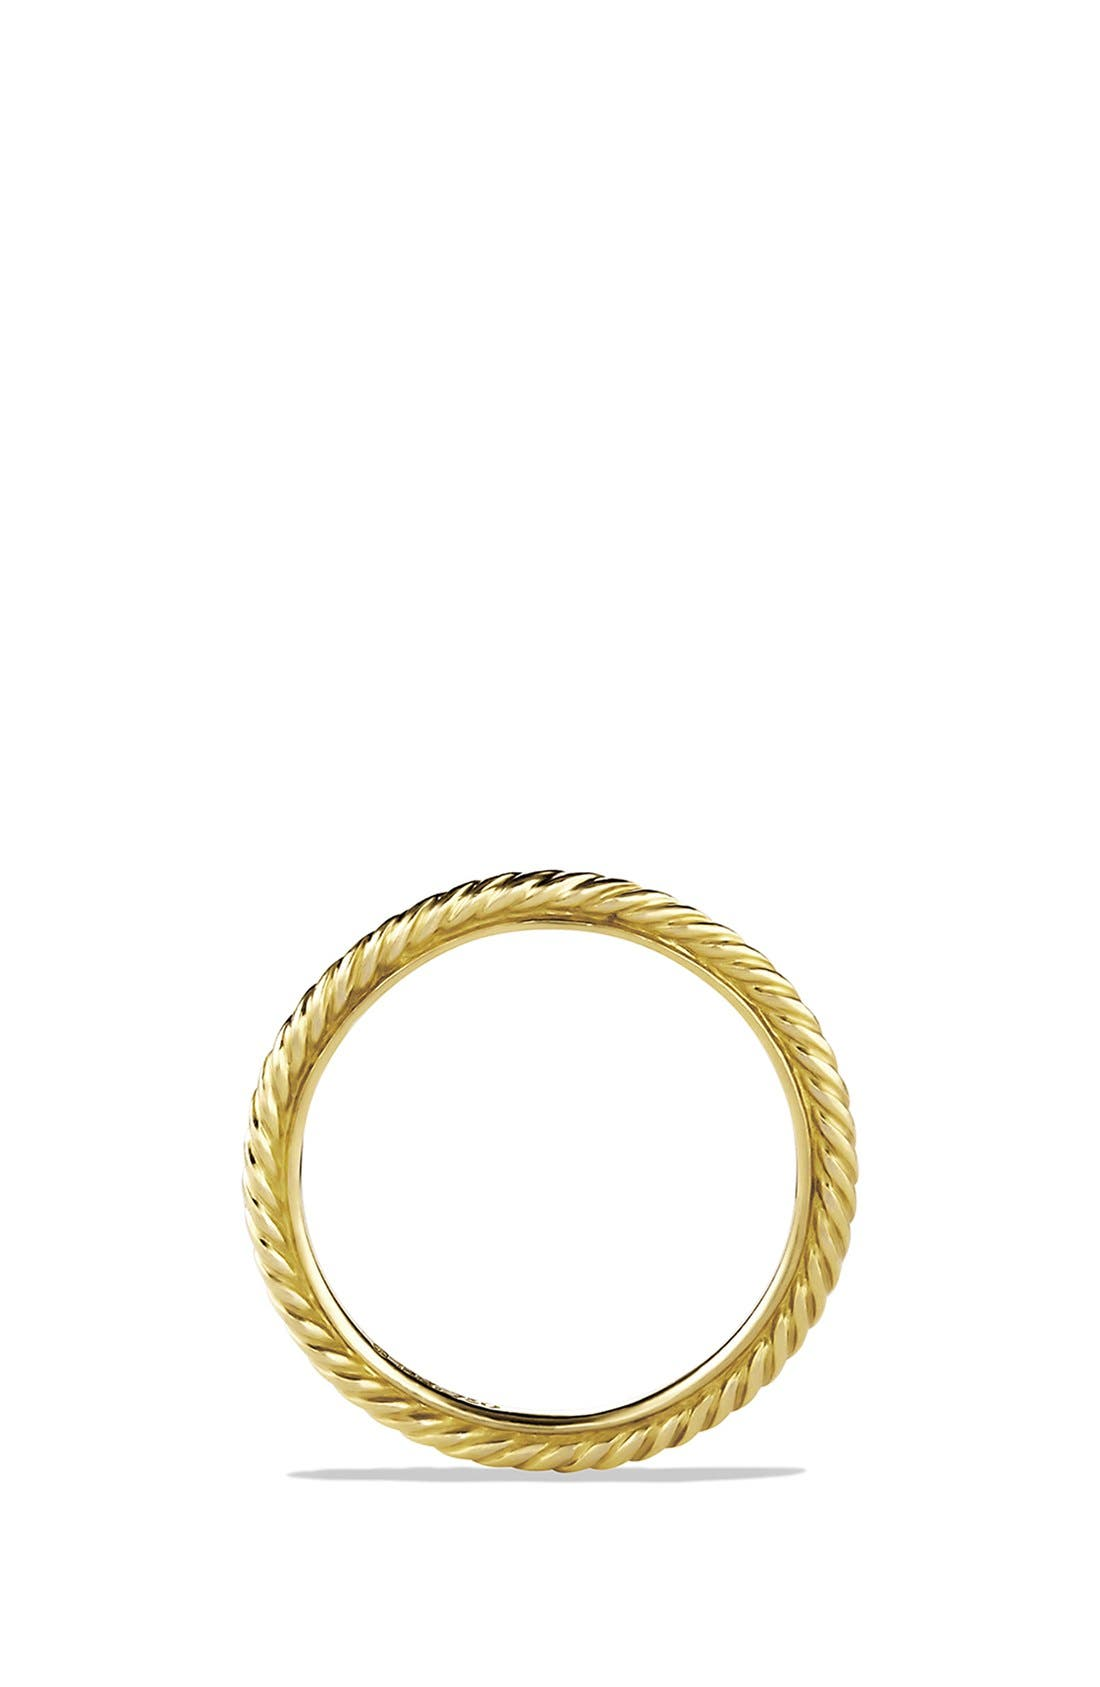 'Cable' Band Ring in Gold,                             Alternate thumbnail 2, color,                             GOLD